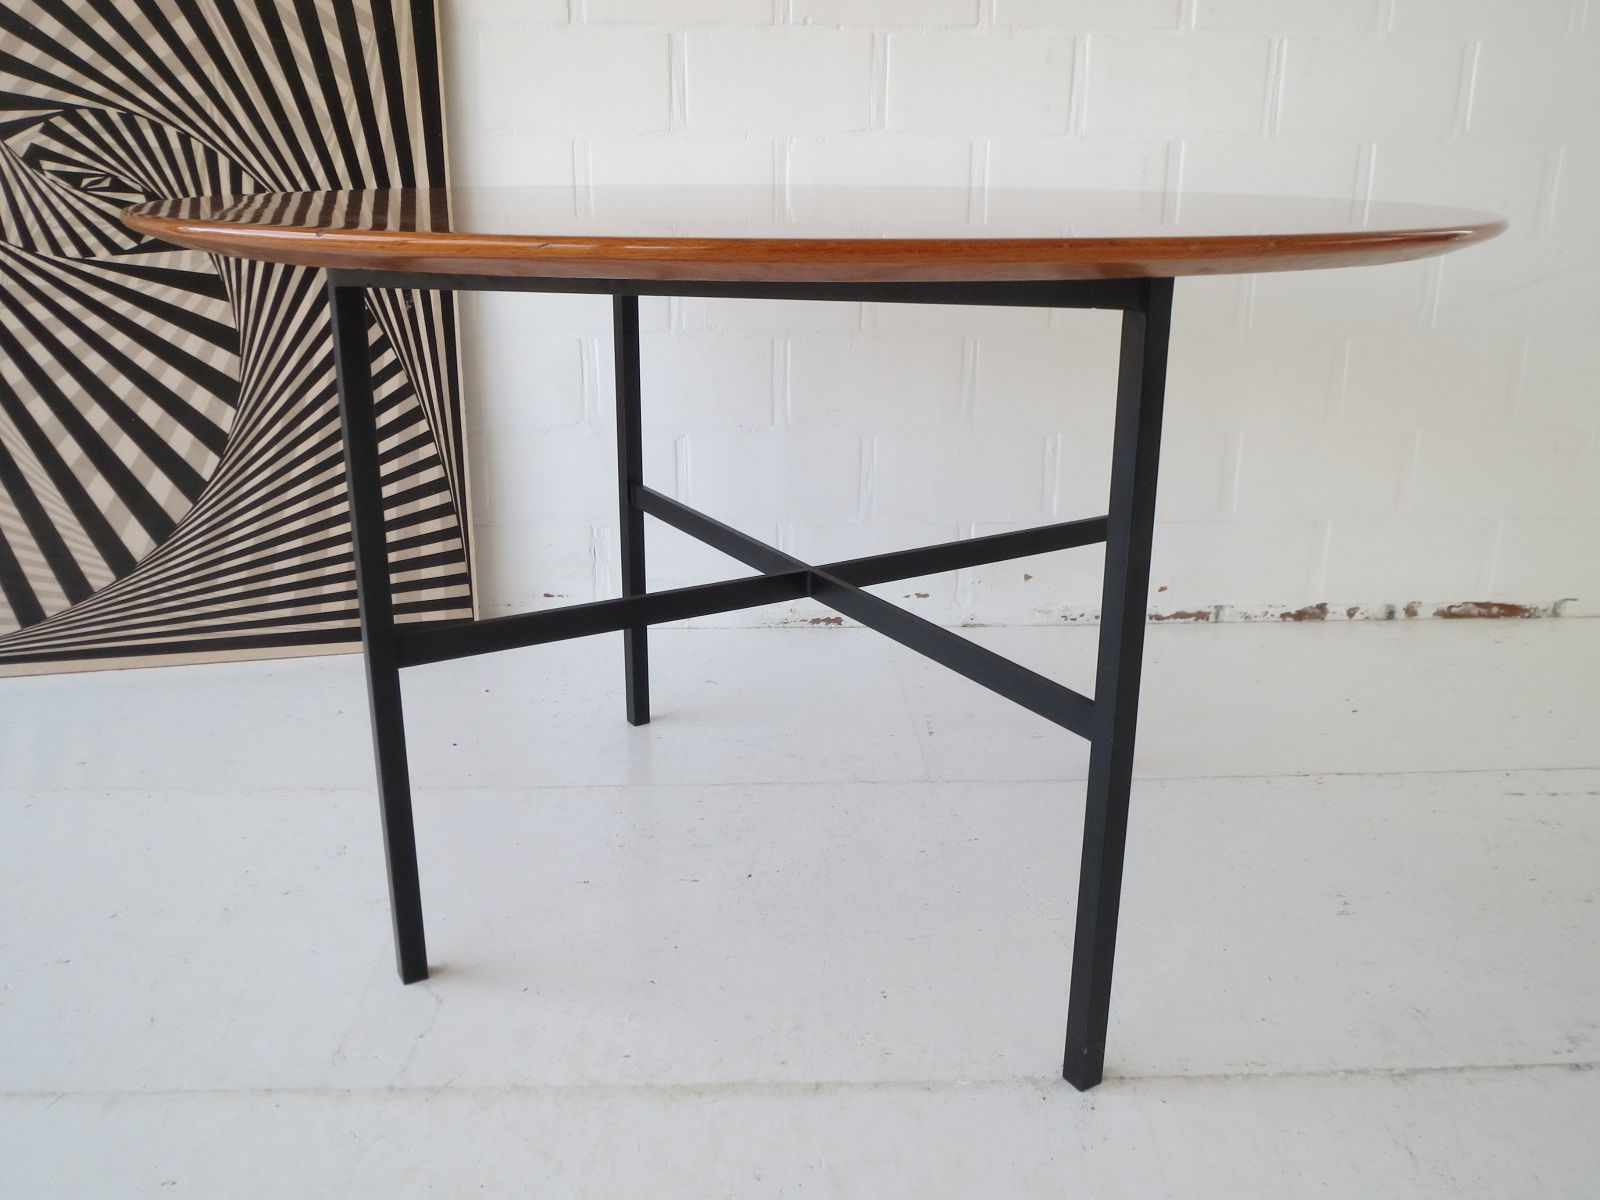 Vintage Belgian Teak Dining Table by Florence Knoll for sale at Pamono